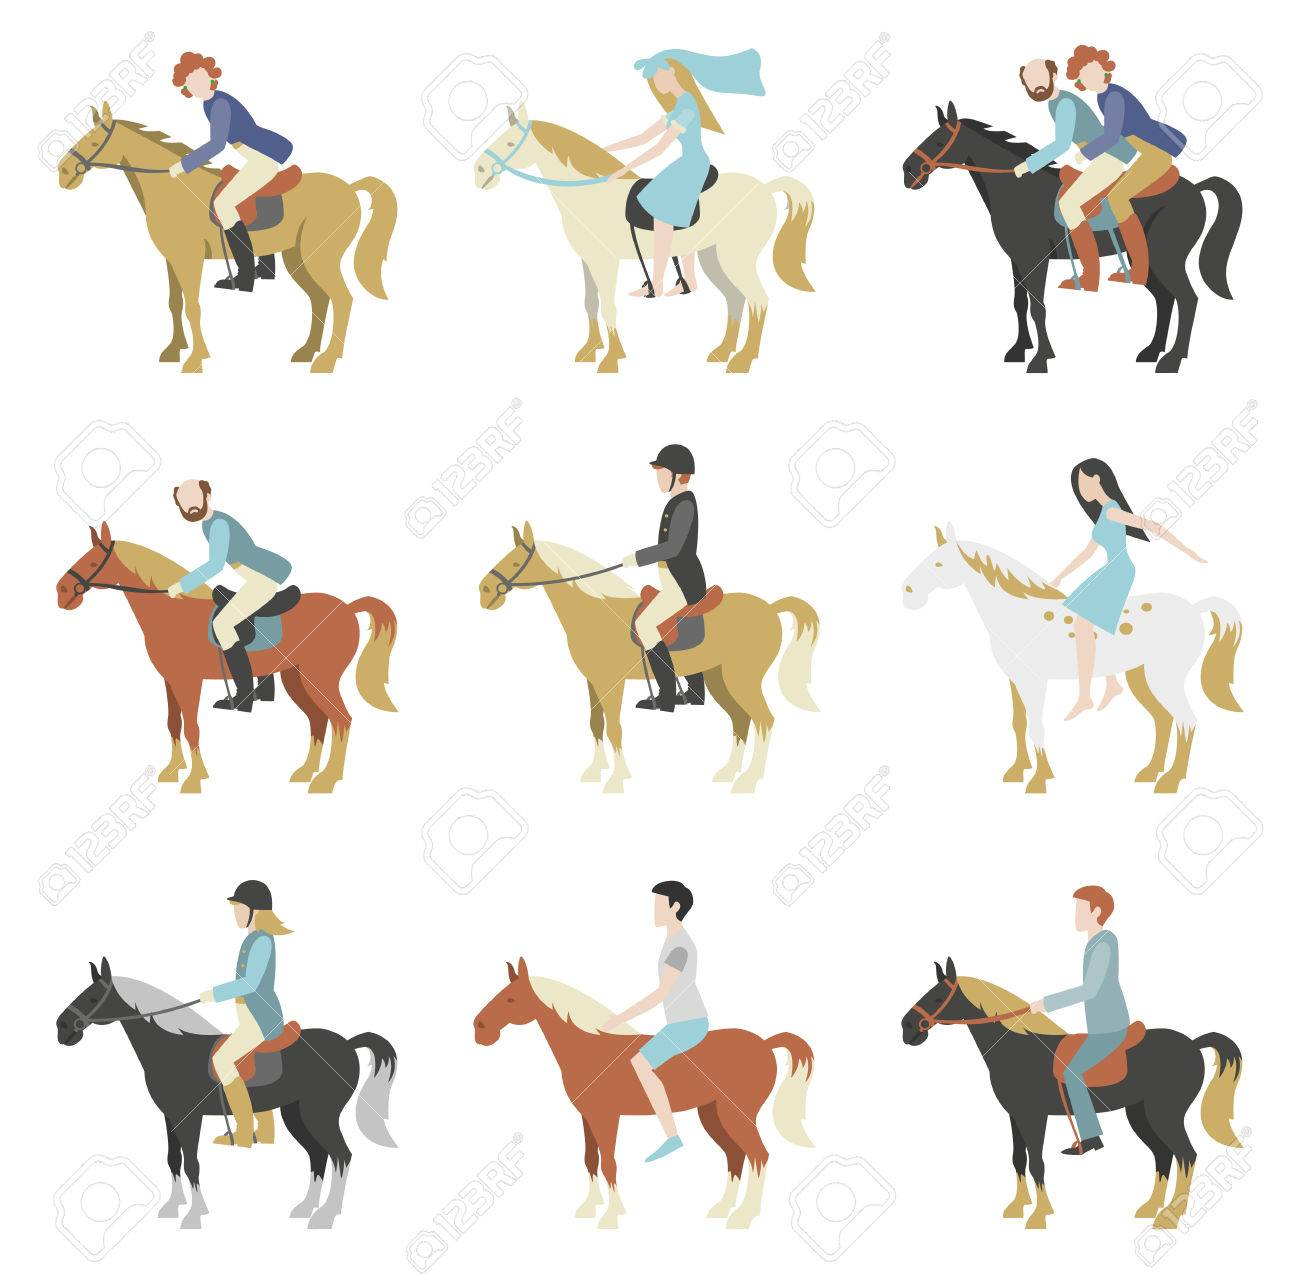 Horse riding lessons. Vector illustration in a flat style. - 45918710